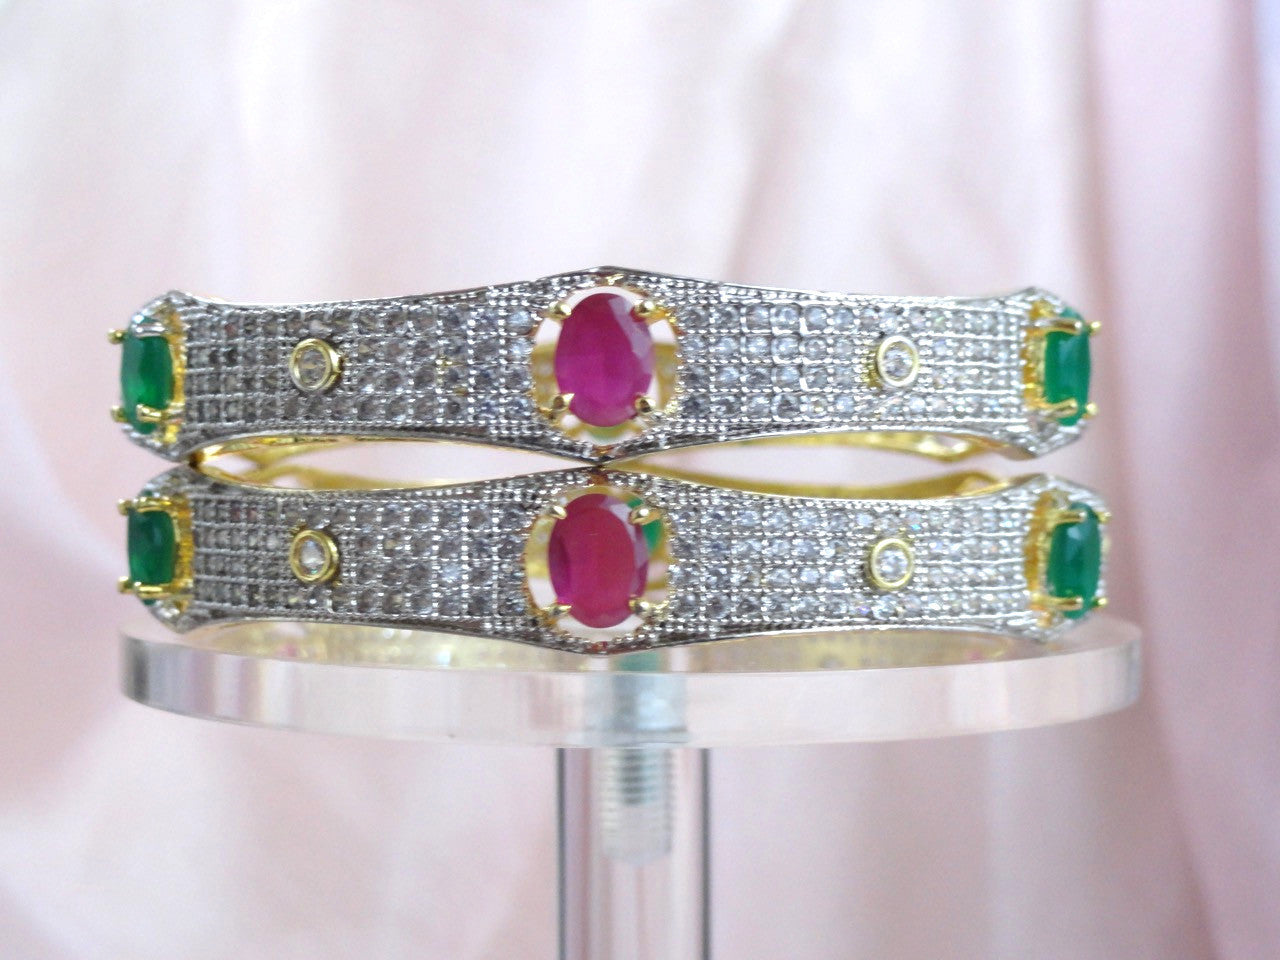 Indian Jewelry Wedding Bracelet Bangle White Diamond Like Stone With Pink And Green